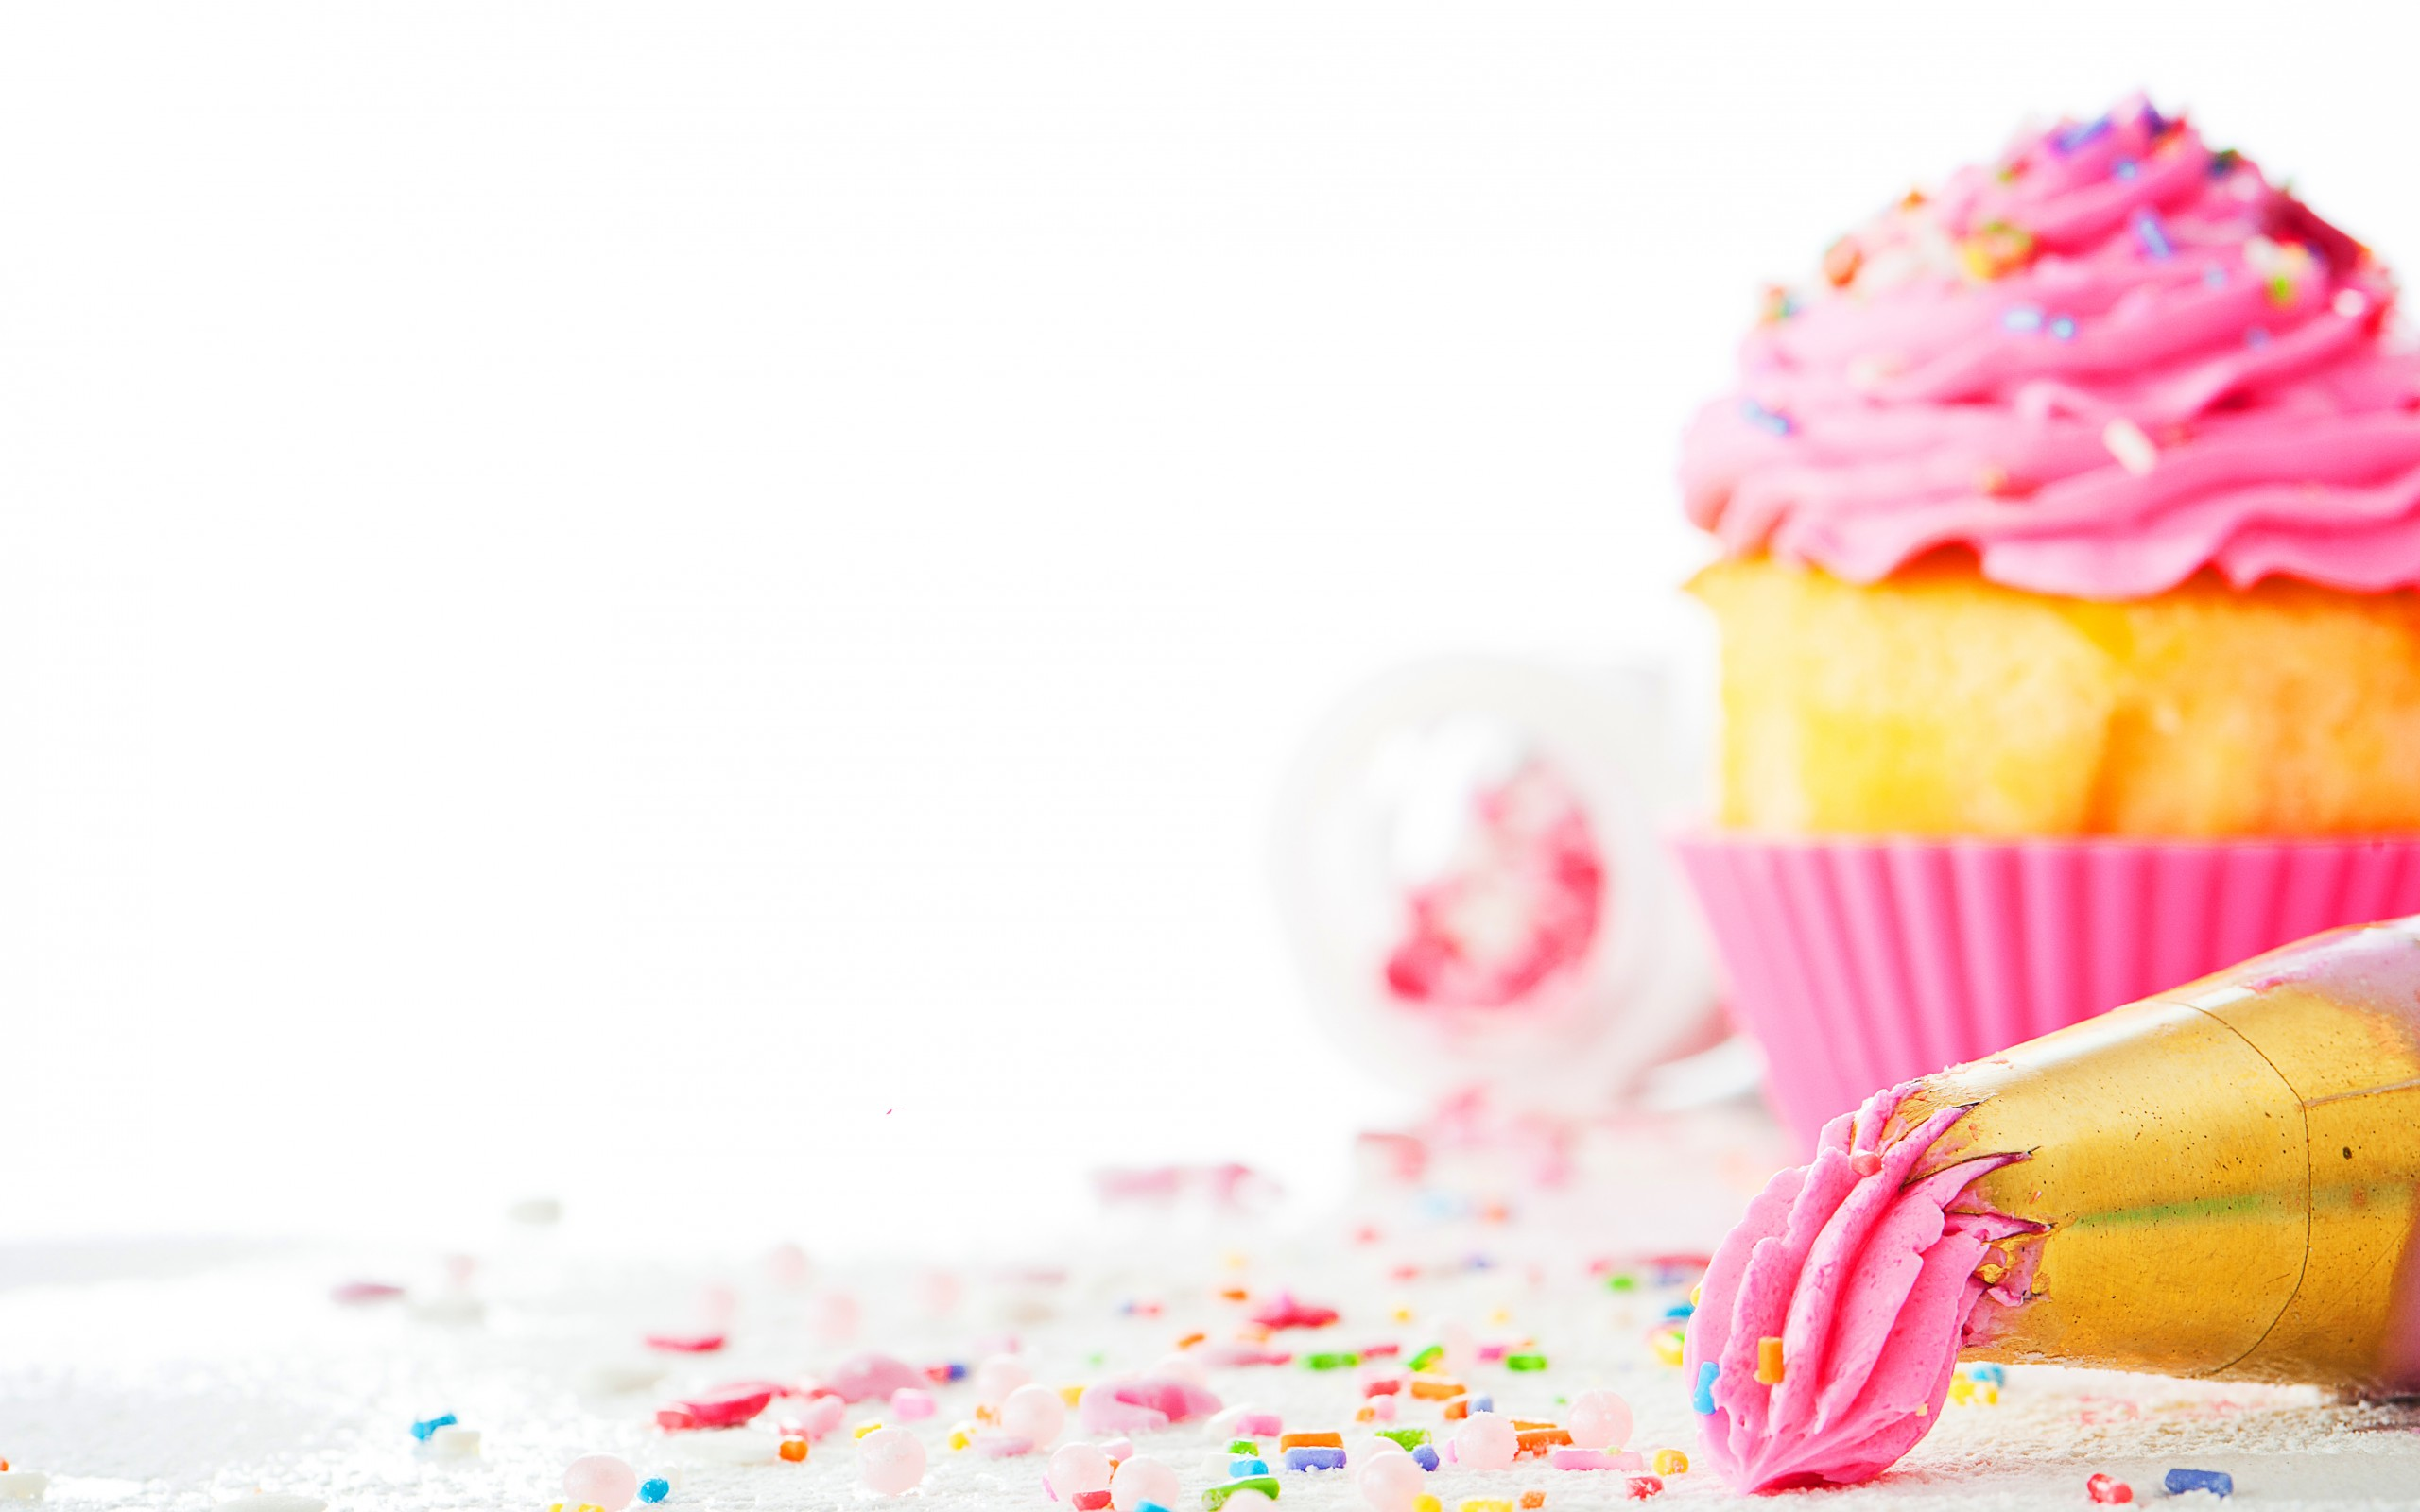 Cupcake HD Wallpaper | Background Image | 2560x1600 | ID:363100 - Wallpaper Abyss